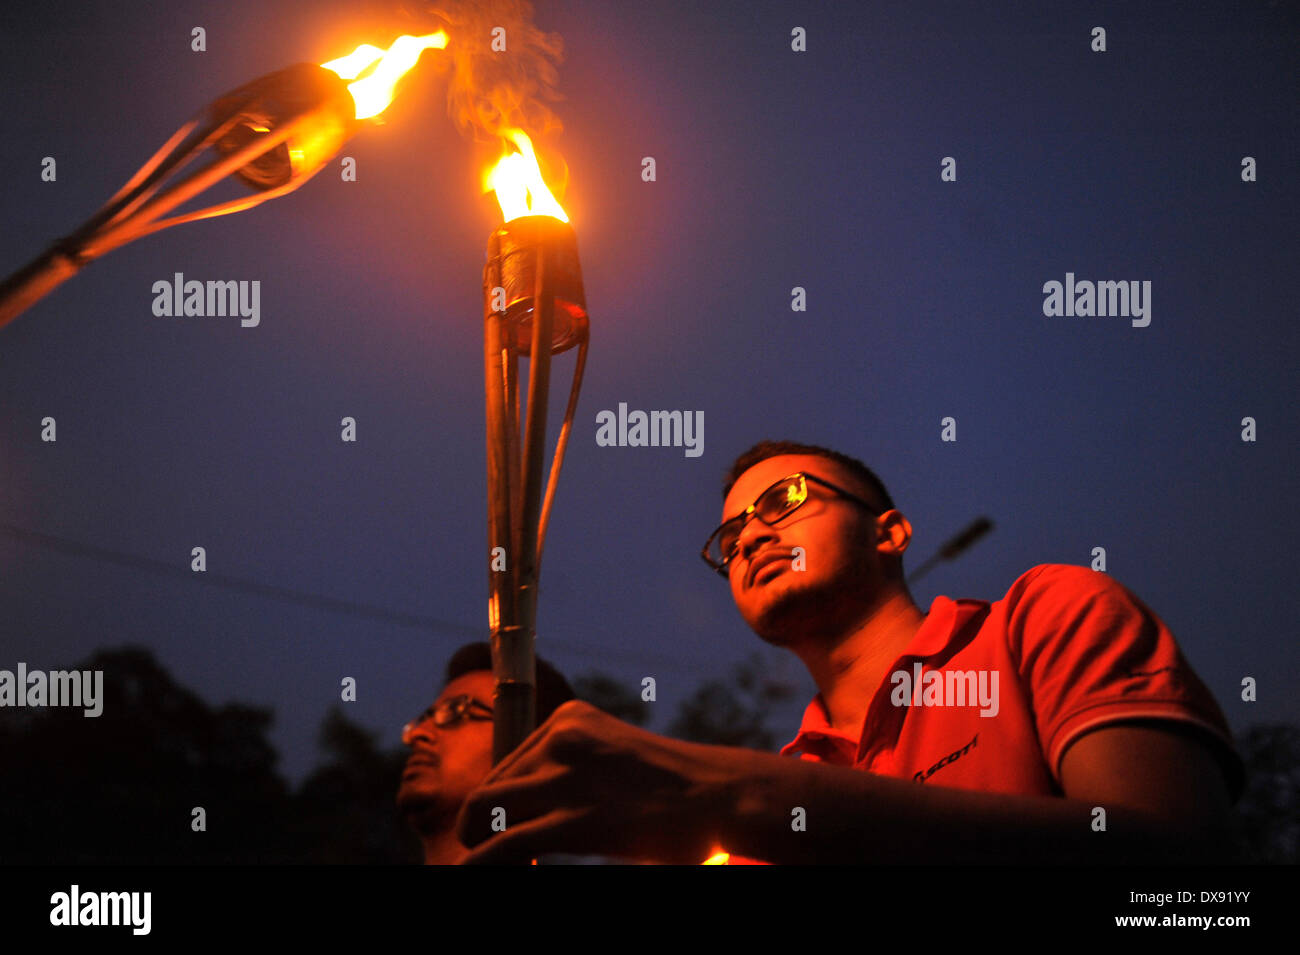 Dhaka, Bangladesh - 20th March 2014: Leftist student group, Bangladesh Satra Federation, rallied at Shahbag in Dhaka, protesting the imperialism of America in Asia pacific. They burned an eagle and a missile effigy. American president Bill Clinton came to Dhaka in 2000 and he signed many treaties between the U.S. and Bangladesh. The protest raised the attention of the local police since it coincided with the Anti Imperialism day. Credit:  PACIFIC PRESS/Alamy Live News - Stock Image